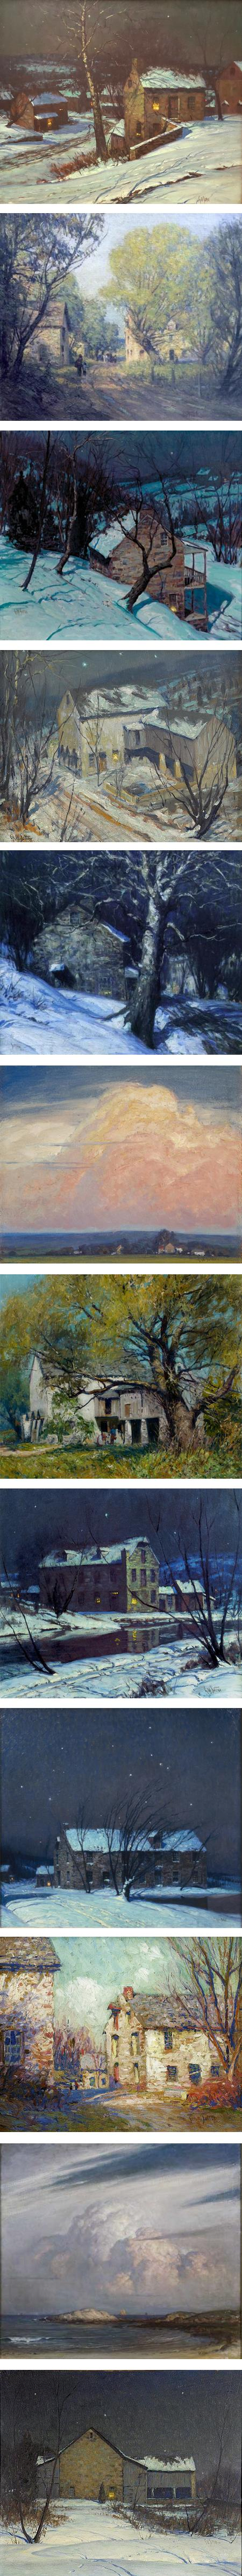 George Sotter: Light and Shadow at Michener Museum